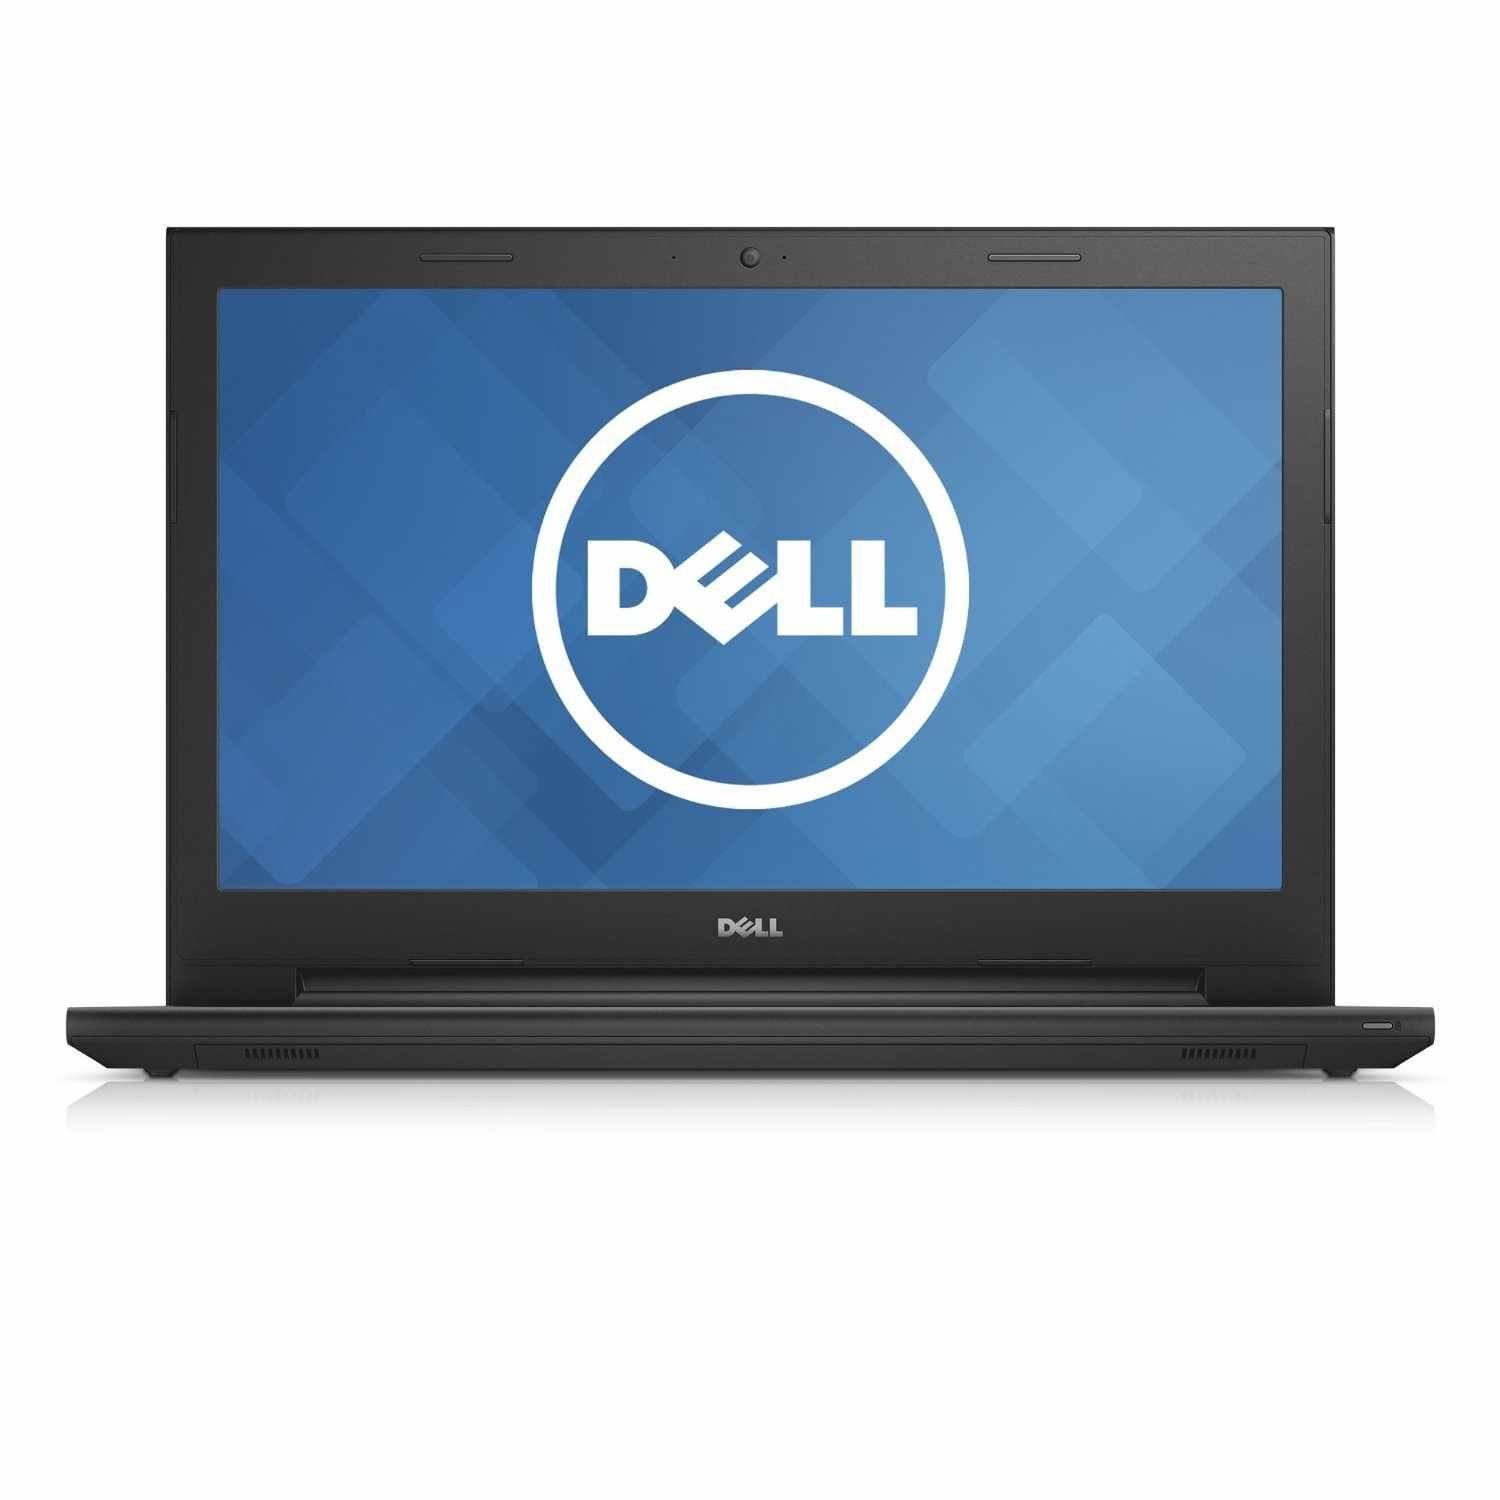 Dell-i3541-2002BLK-Inspiron-15-3000-15-3541-15-6-Touchscreen-LED